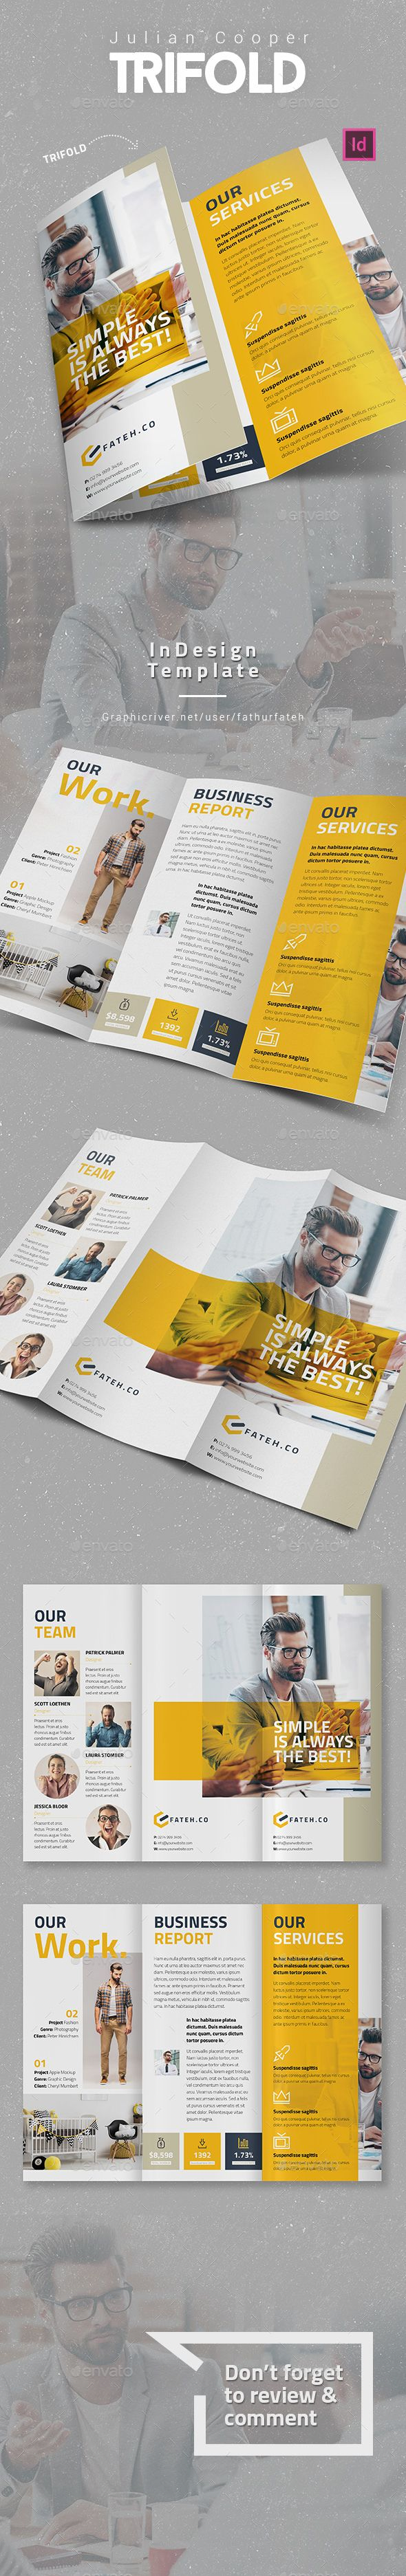 Julian Cooper Trifold  — InDesign Template #inspiration #clean #brochure • Download ➝ https://graphicriver.net/item/julian-cooper-trifold/18620972?ref=pxcr